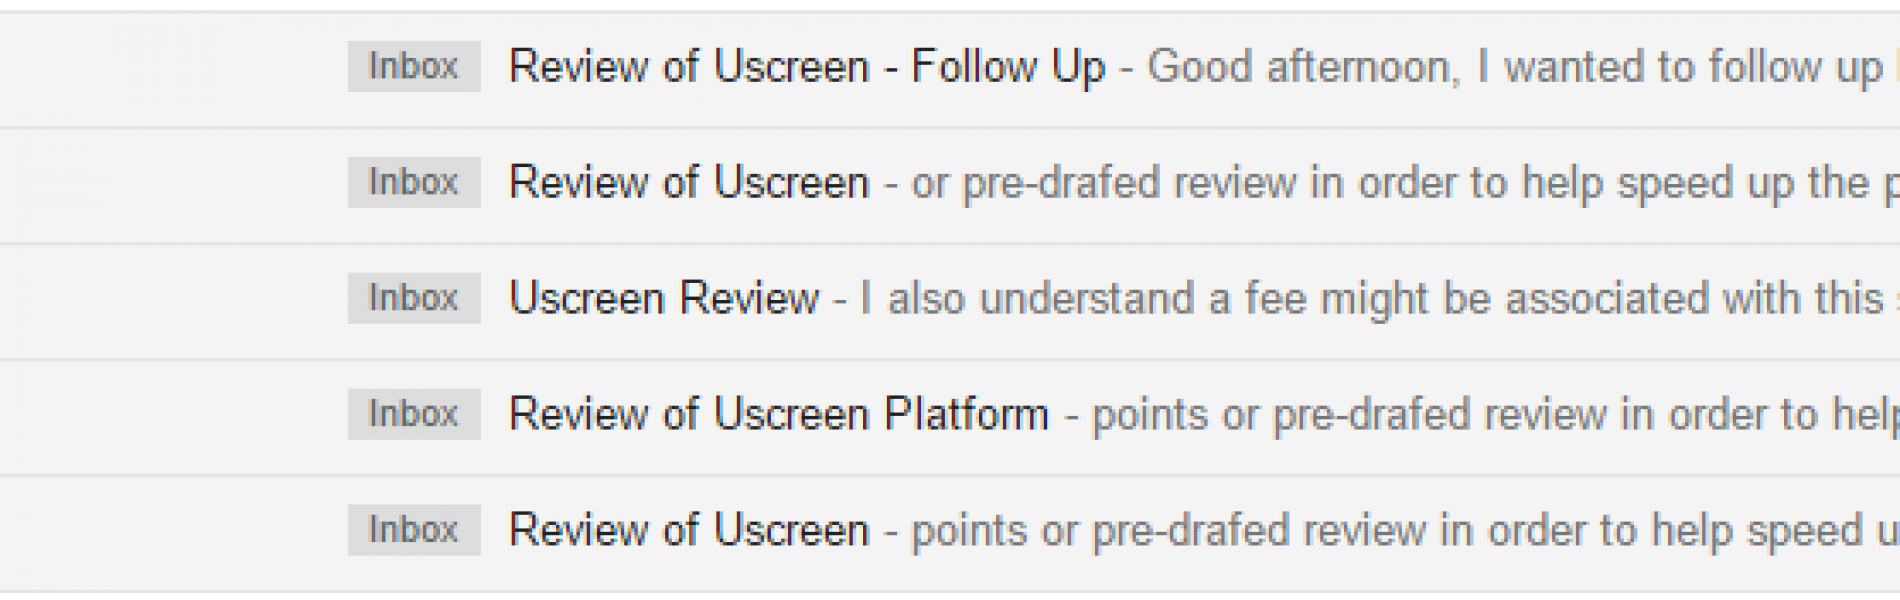 Beware of Uscreen Reviews, They offer $$$ for Reviews.